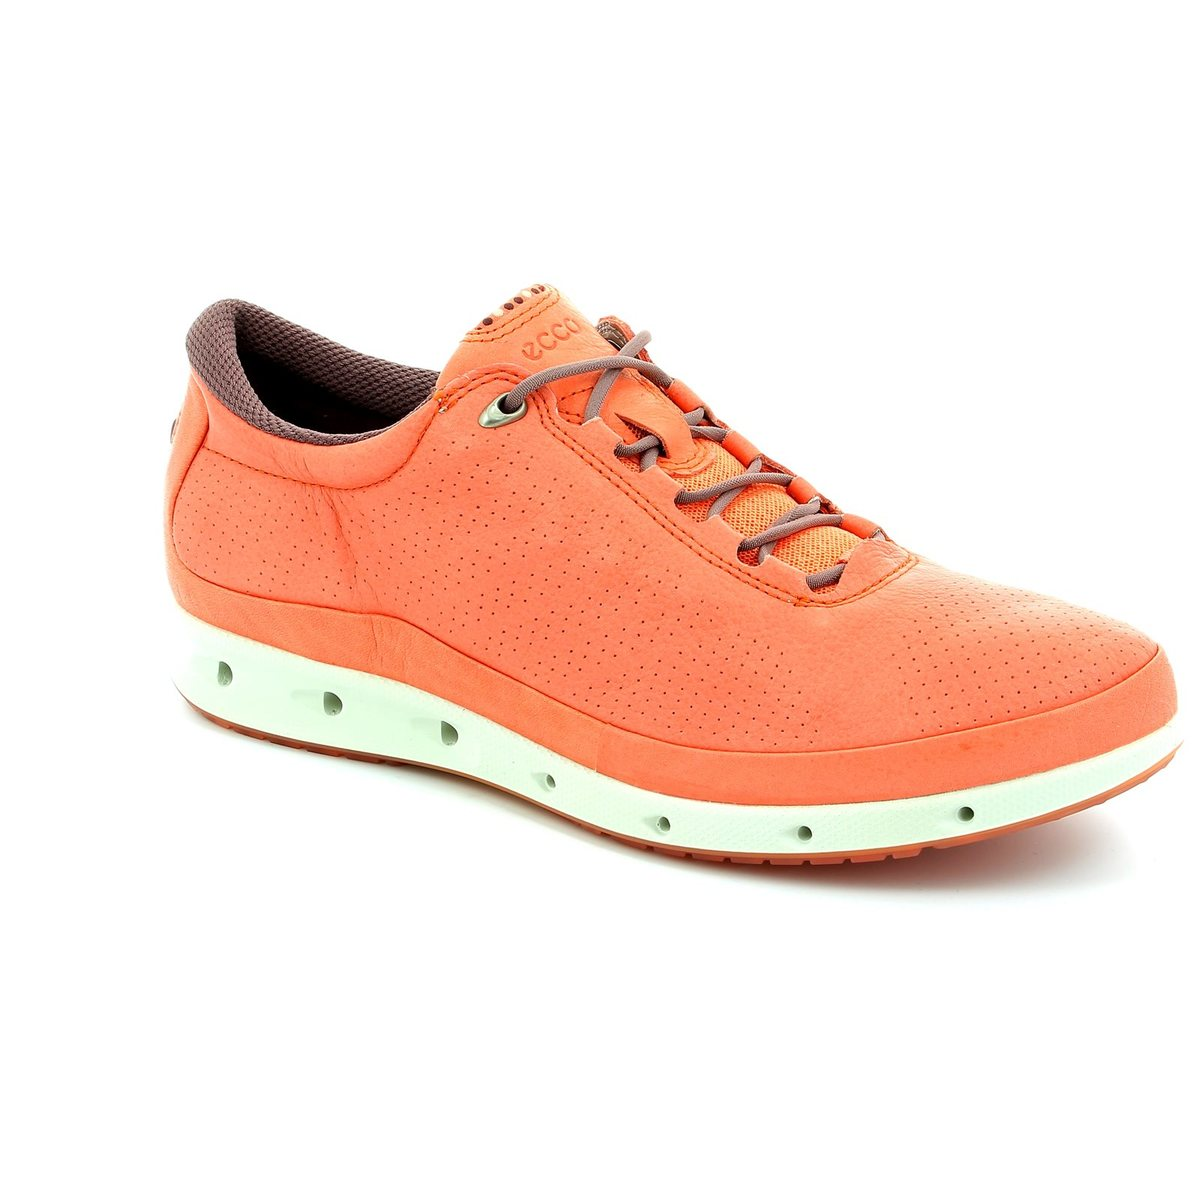 qq9y3xuhbd722.gq is the first online wholesale shoes store. Your one stop shop for the best prices in discount Wholesale shoes. We offer the latest styles in wholesale shoes, sandals, and boots at the best price.